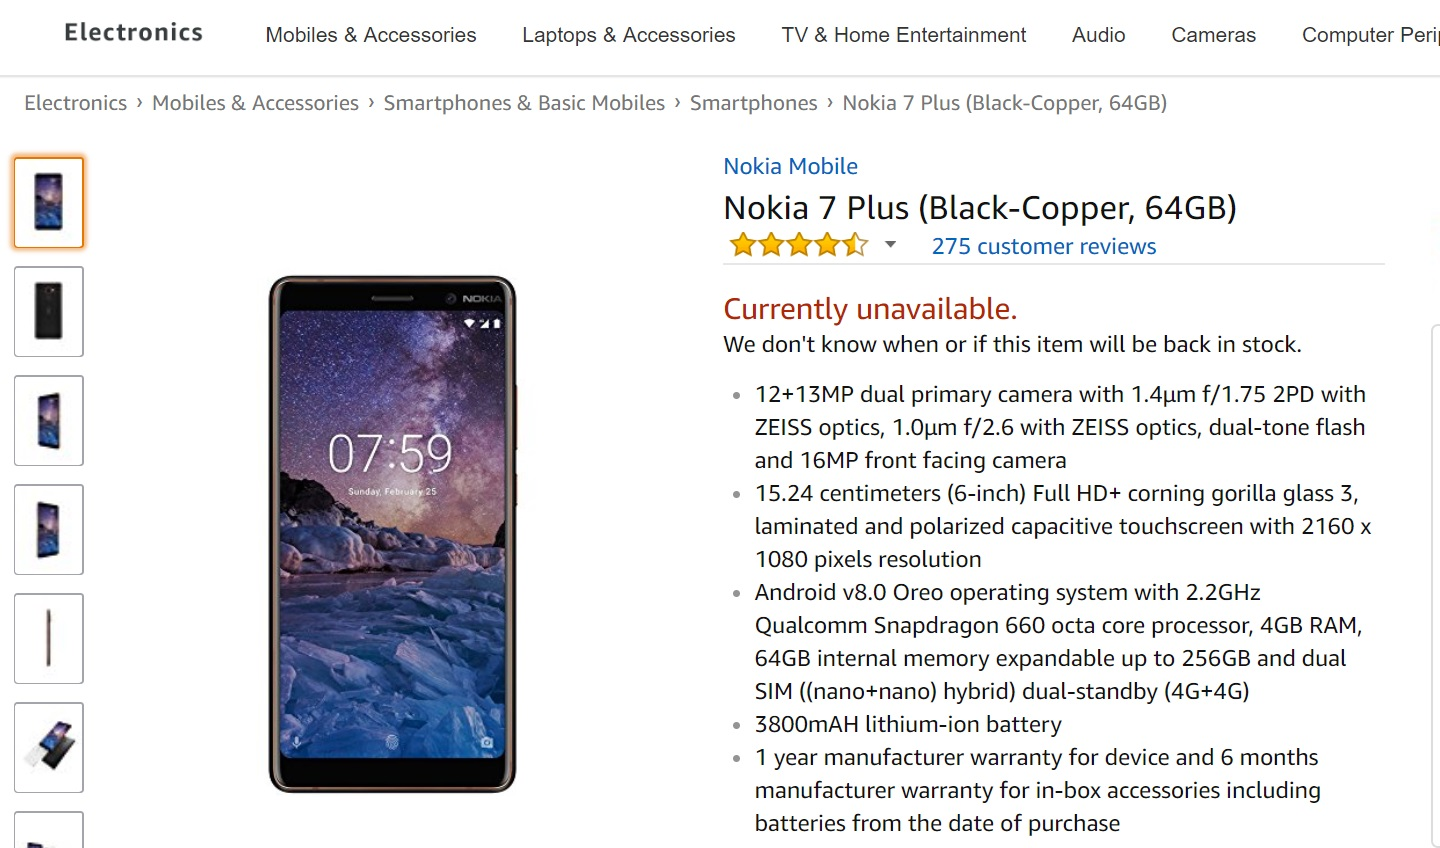 79872c63 A week after the Nokia 7 plus went on sale in India, the exclusive online  retail partner Amazon.in is out of stock. If you open the product page of  Nokia 7 ...